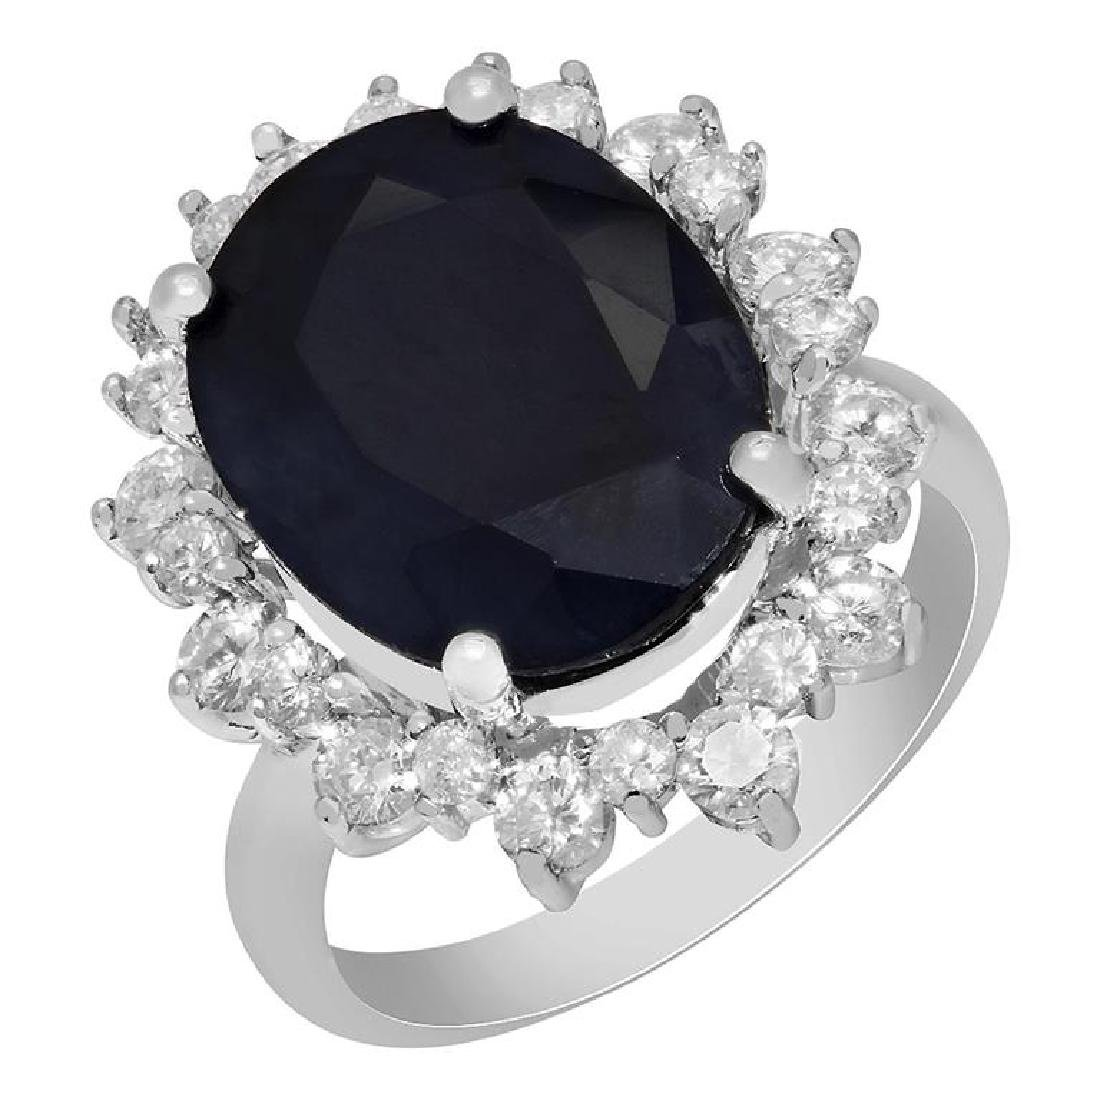 14k White Gold 10.75ct Sapphire 1.69ct Diamond Ring